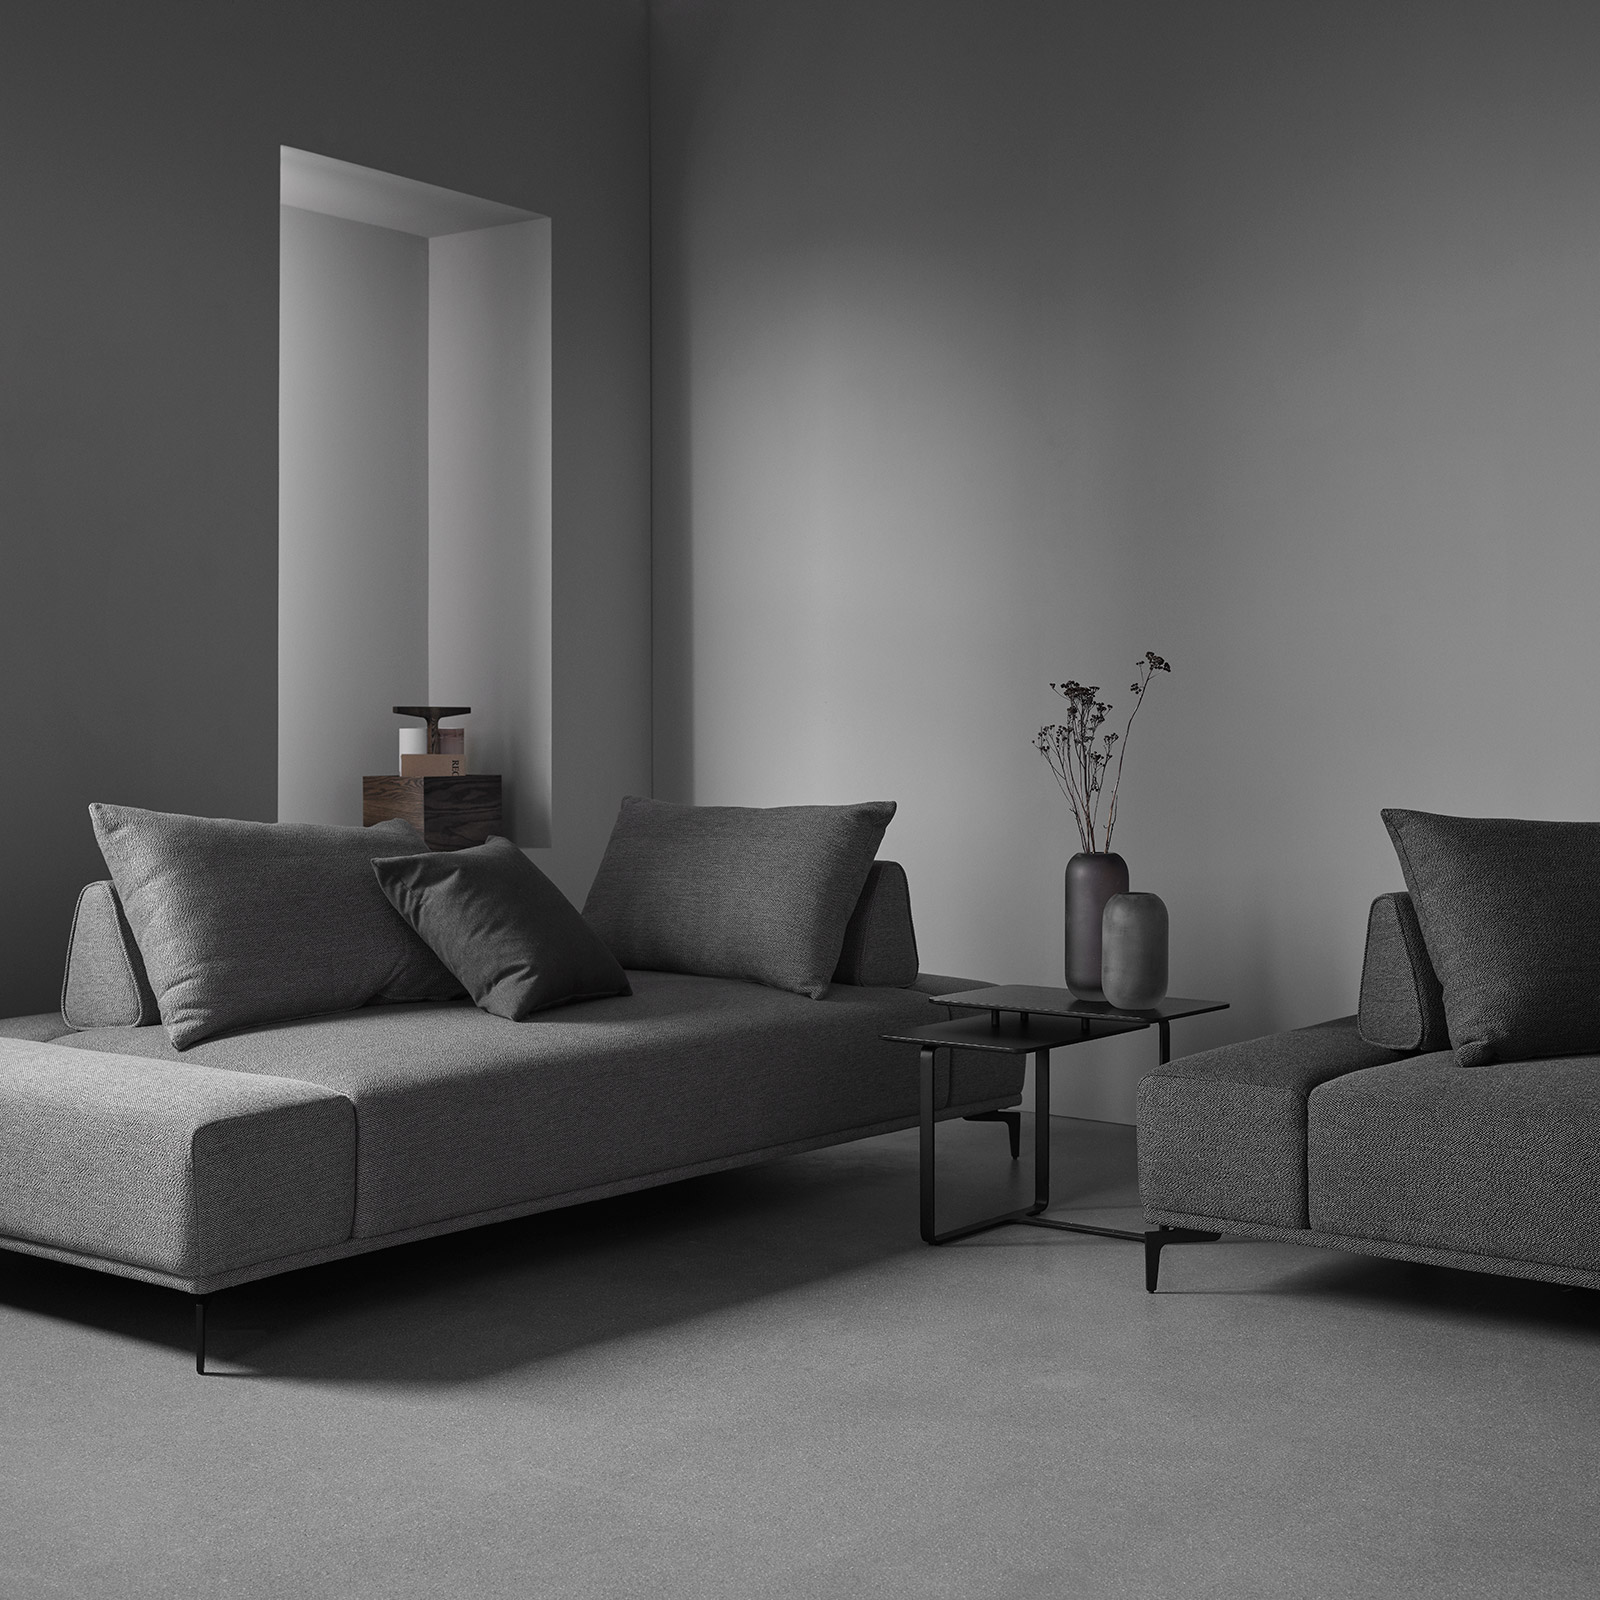 Define sofa by Wendelbo in dark grey fabric in grey minimal room